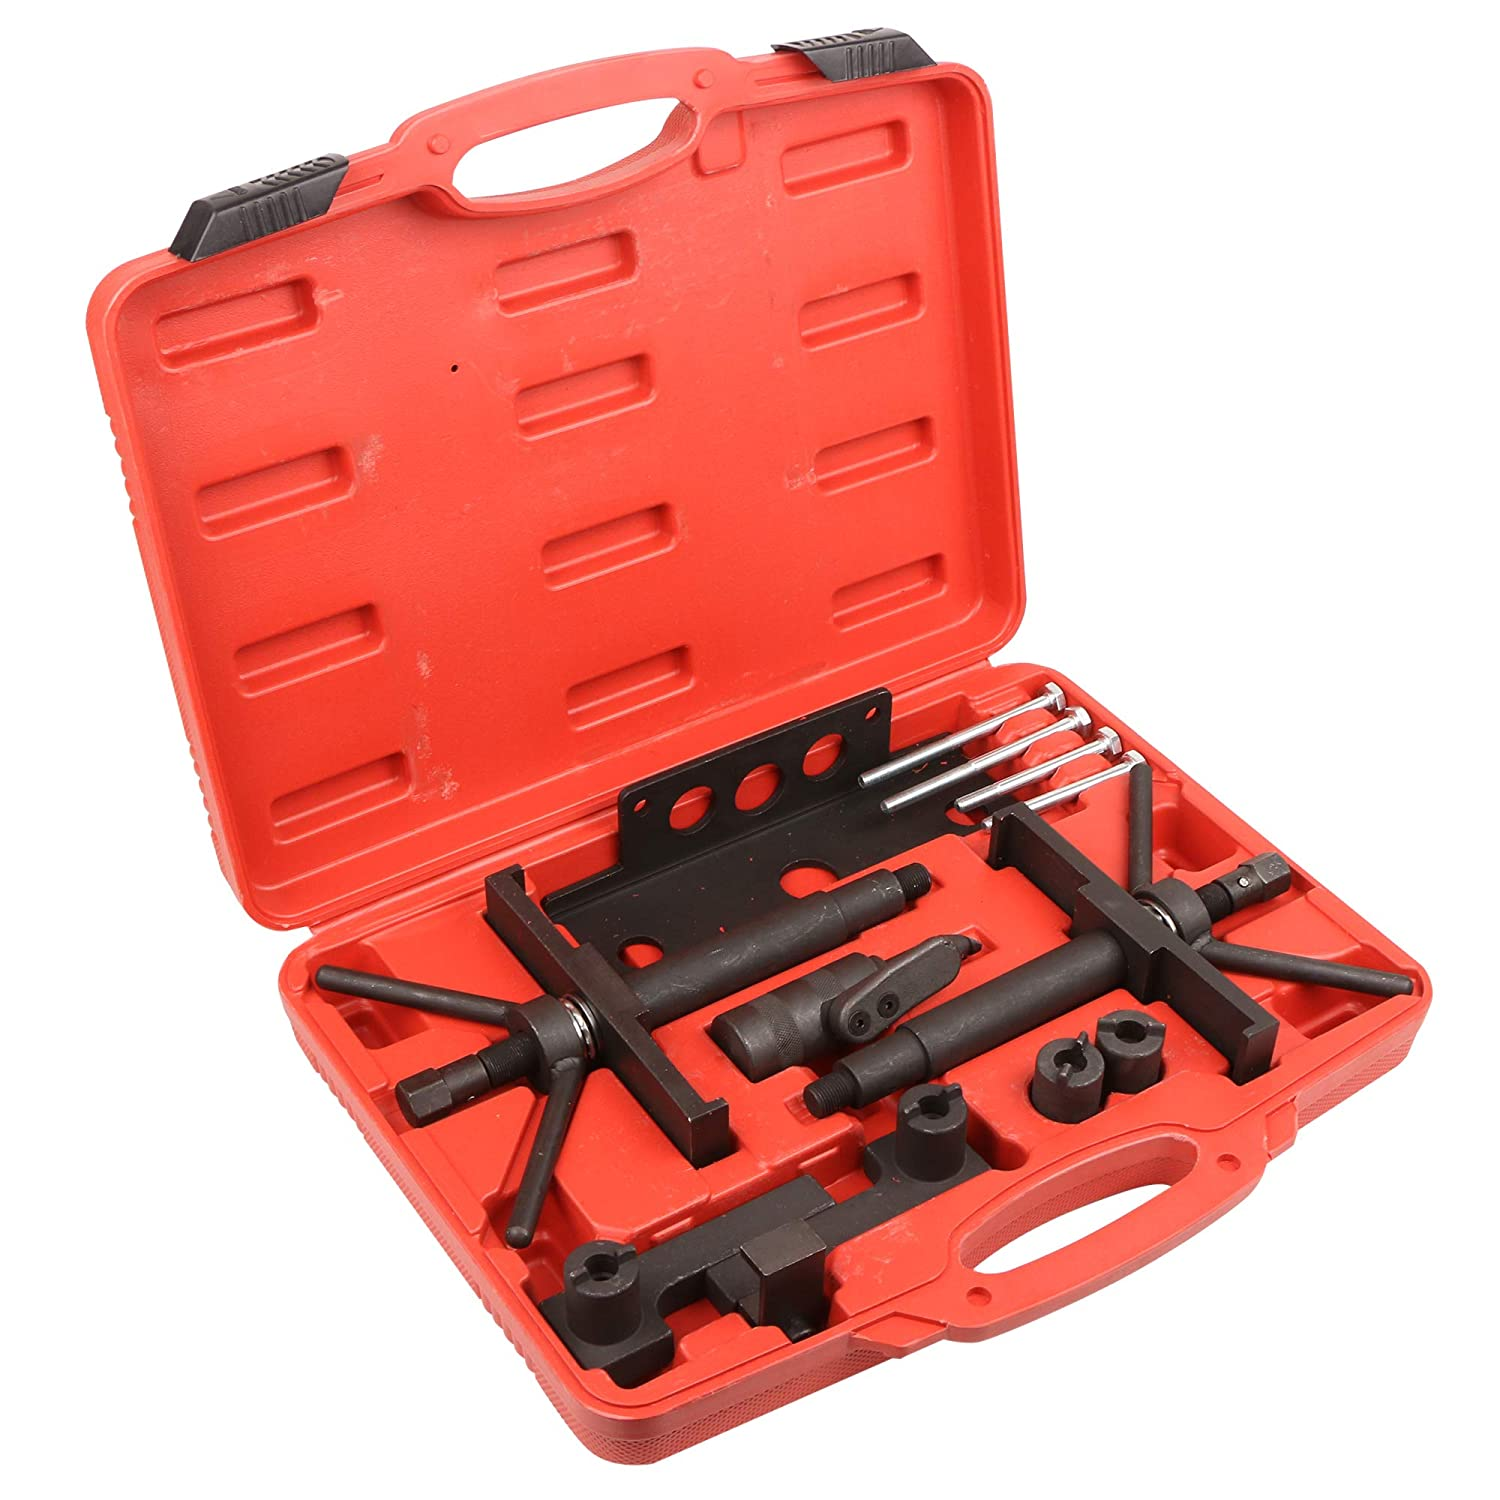 MOSTPLUS Camshaft Crankshaft Alignment Timing Locking Tool for VOLVO Models 850 960 S40 S70 and S90 Heavy Duty Steel Construction-13 Pieces